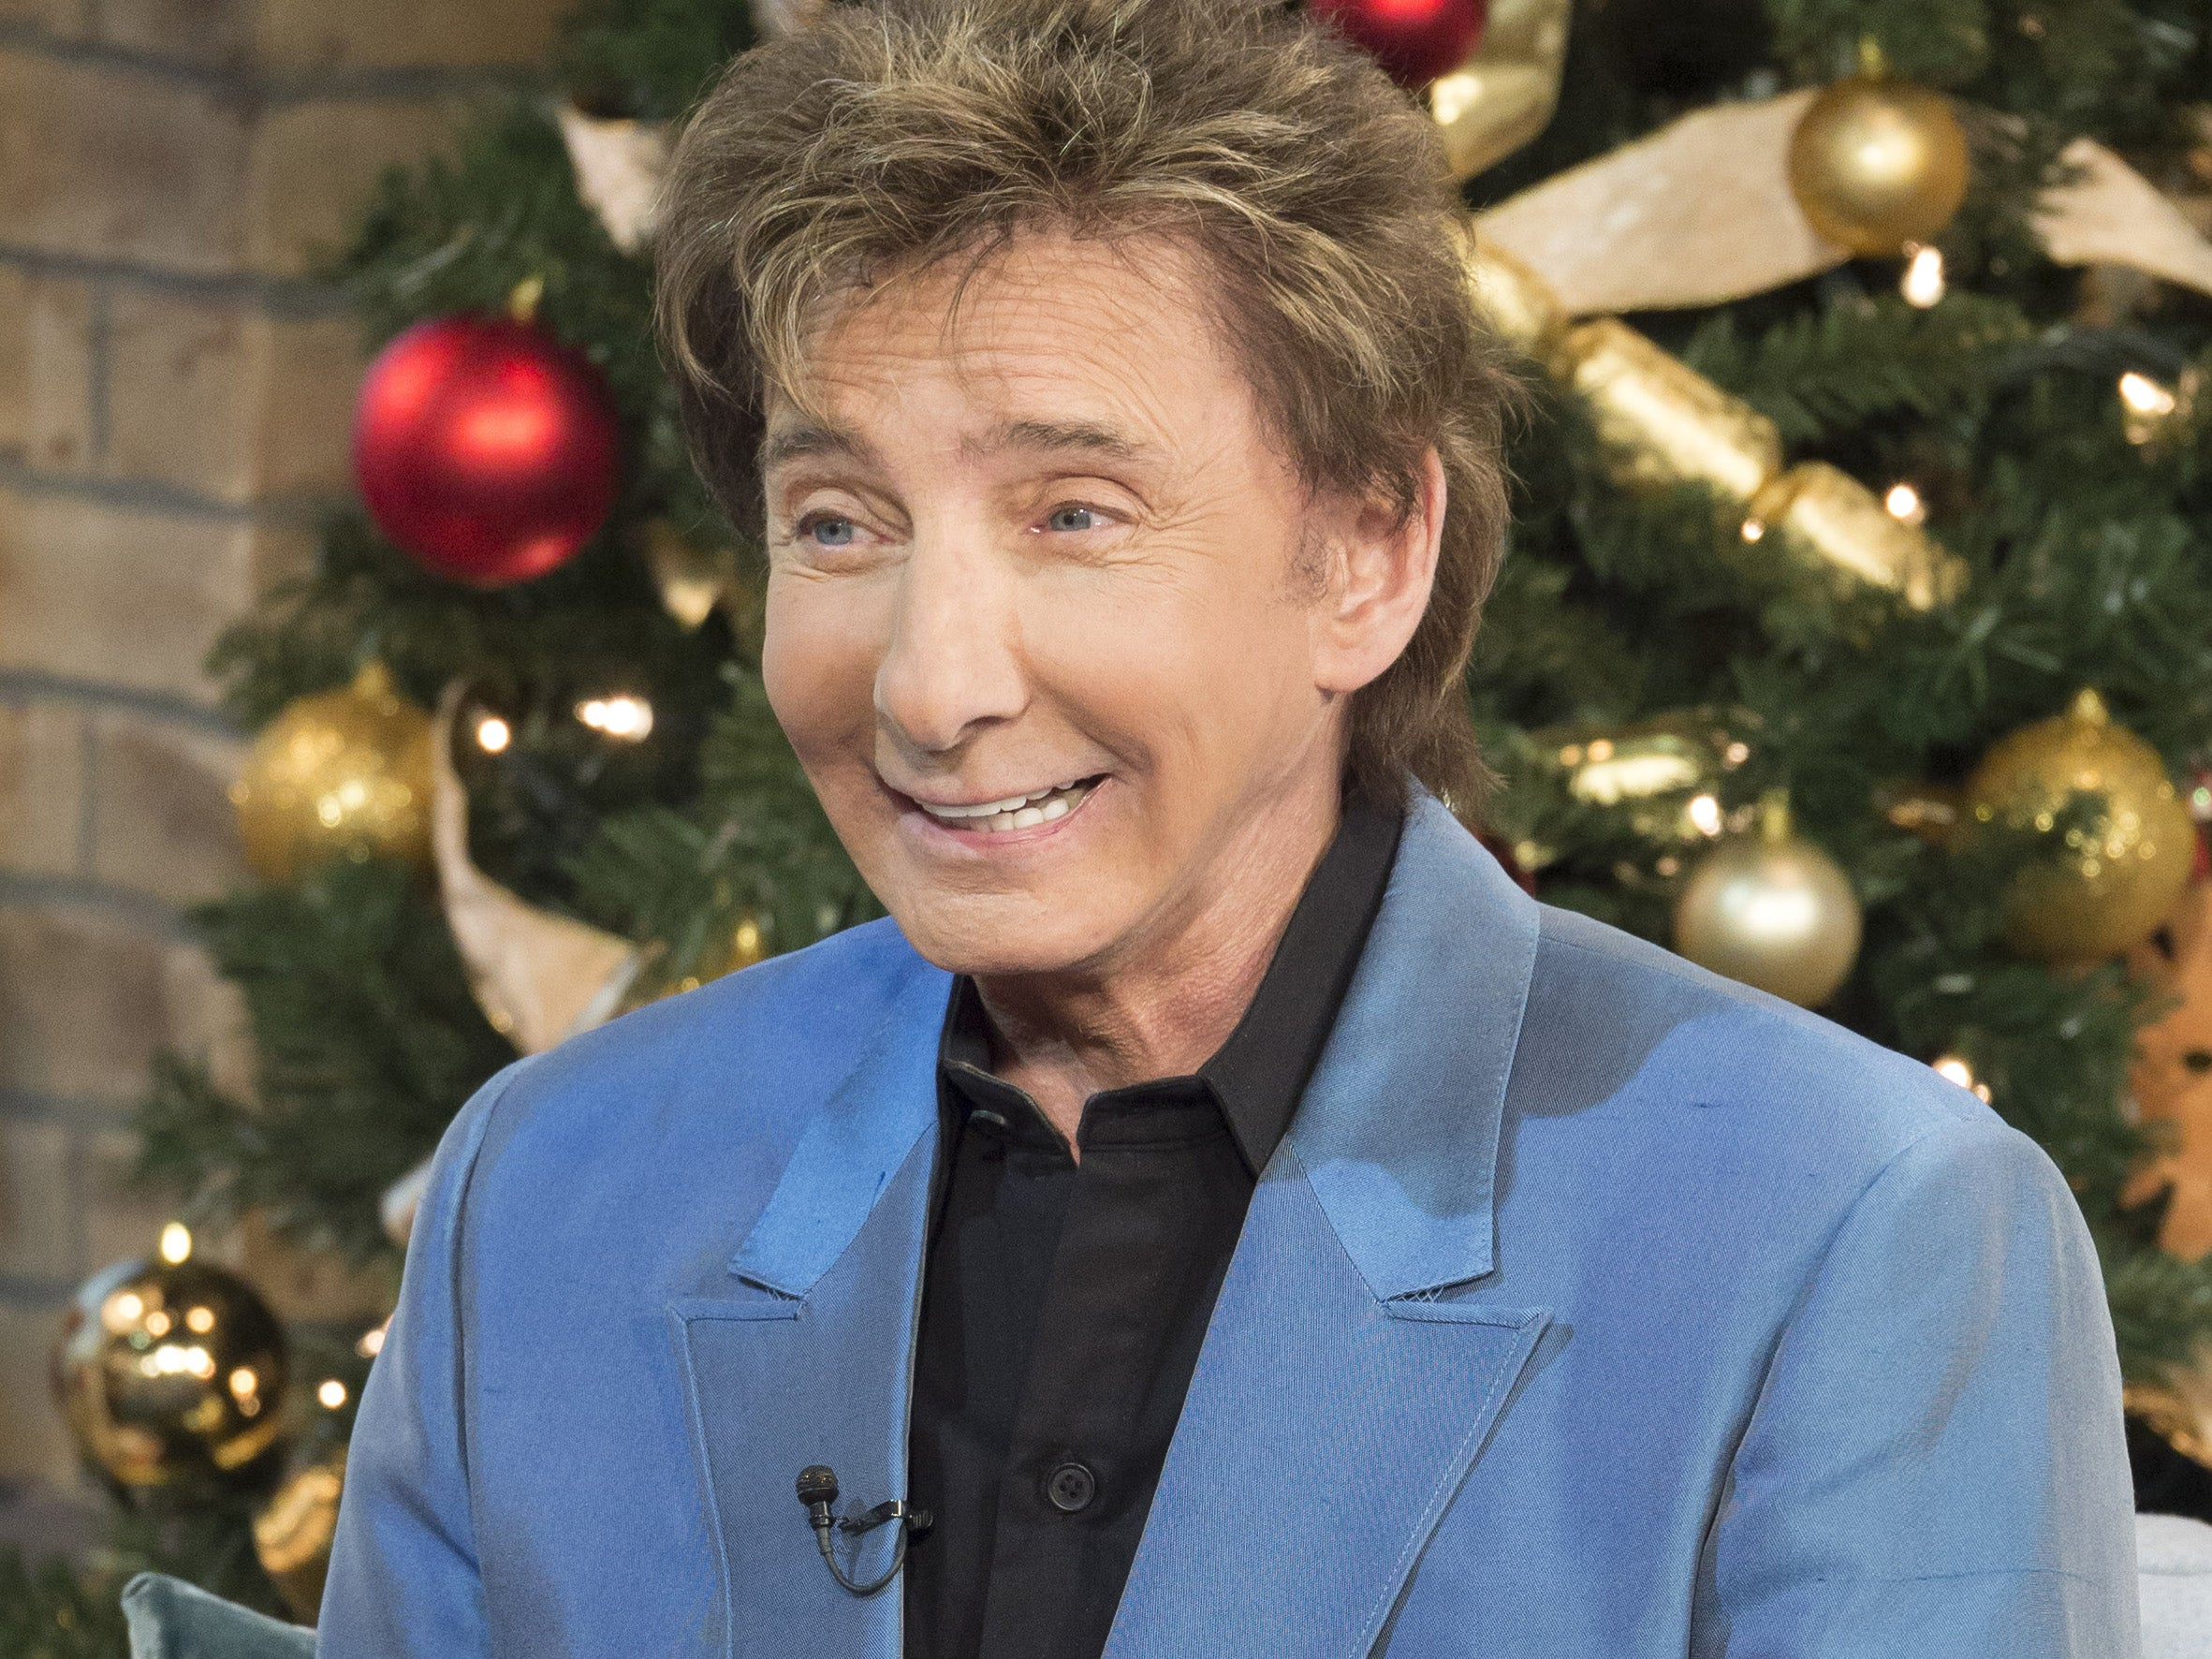 susan deixler dating The enquirer reported that manilow's neighbour suzanne somers acted as the manilow - who briefly married susan deixler in the 1960s - is.